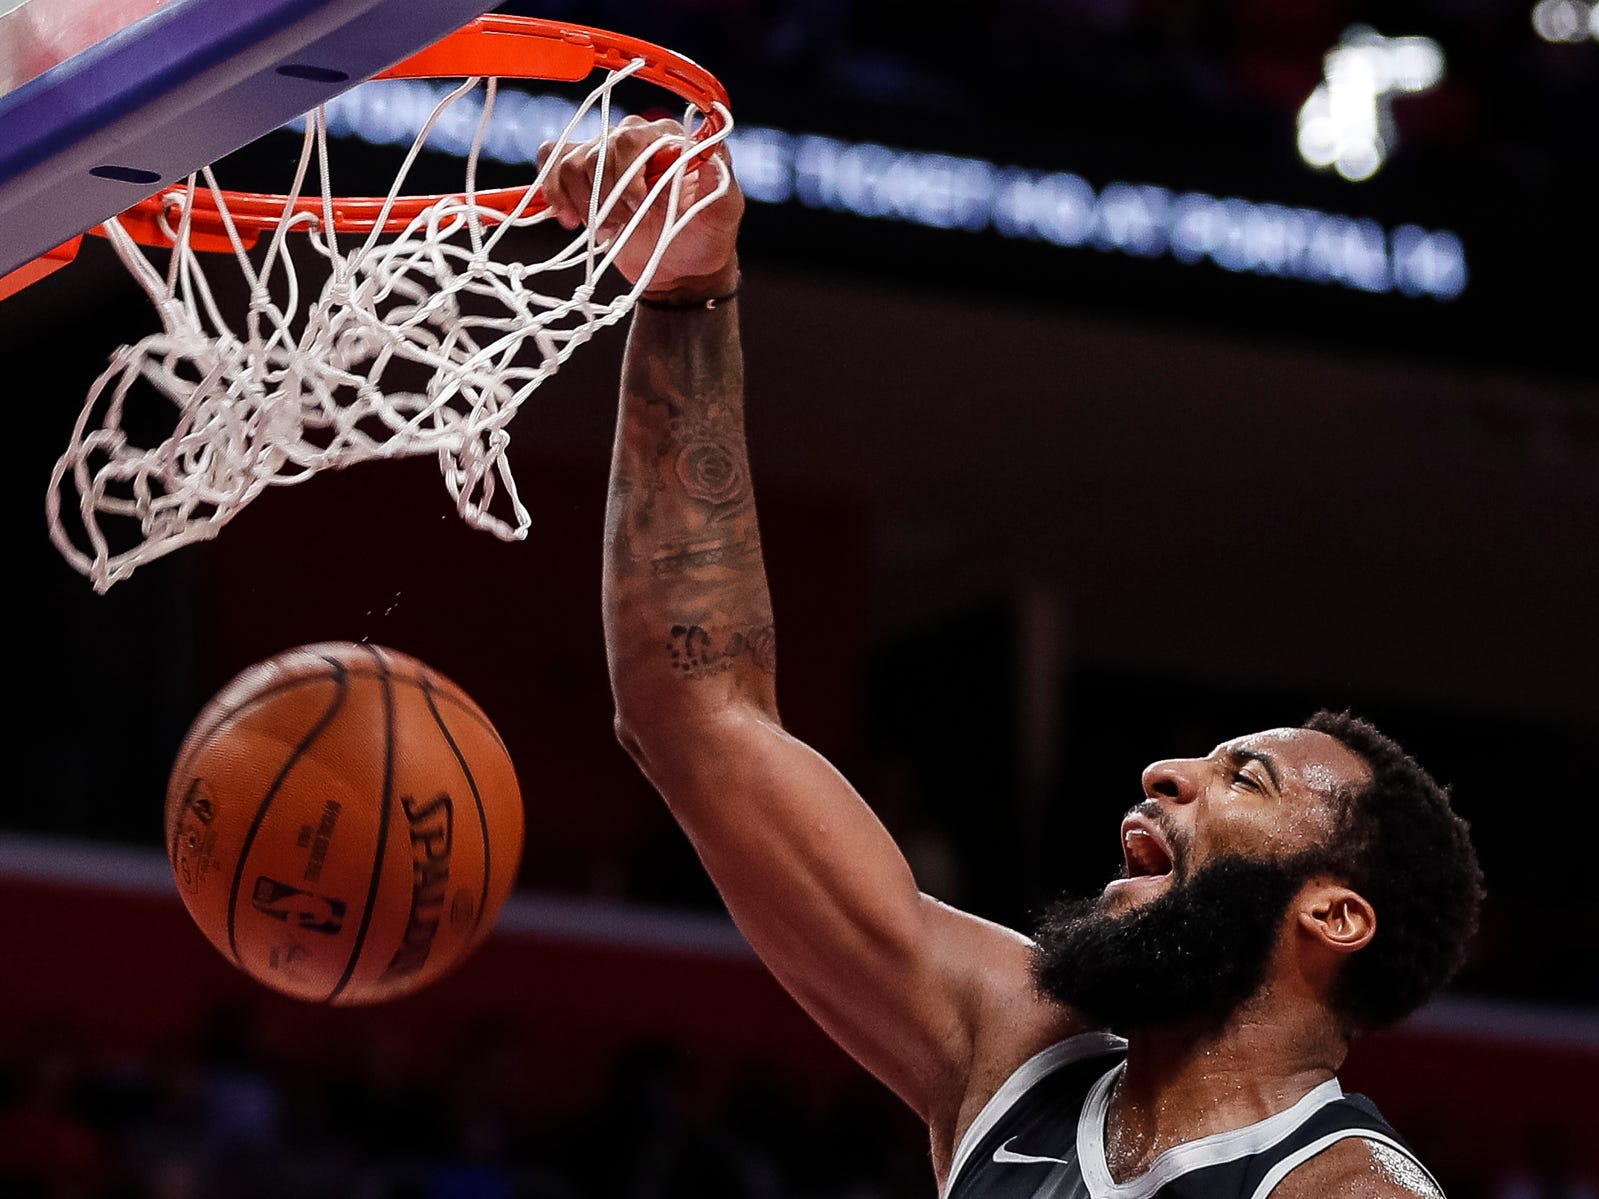 Pistons center Andre Drummond (0) dunks the ball against Trail Blazers during the second half of the Pistons' 99-90 win over the Trail Blazers on Saturday, March 30, 2019, at Little Caesars Arena.